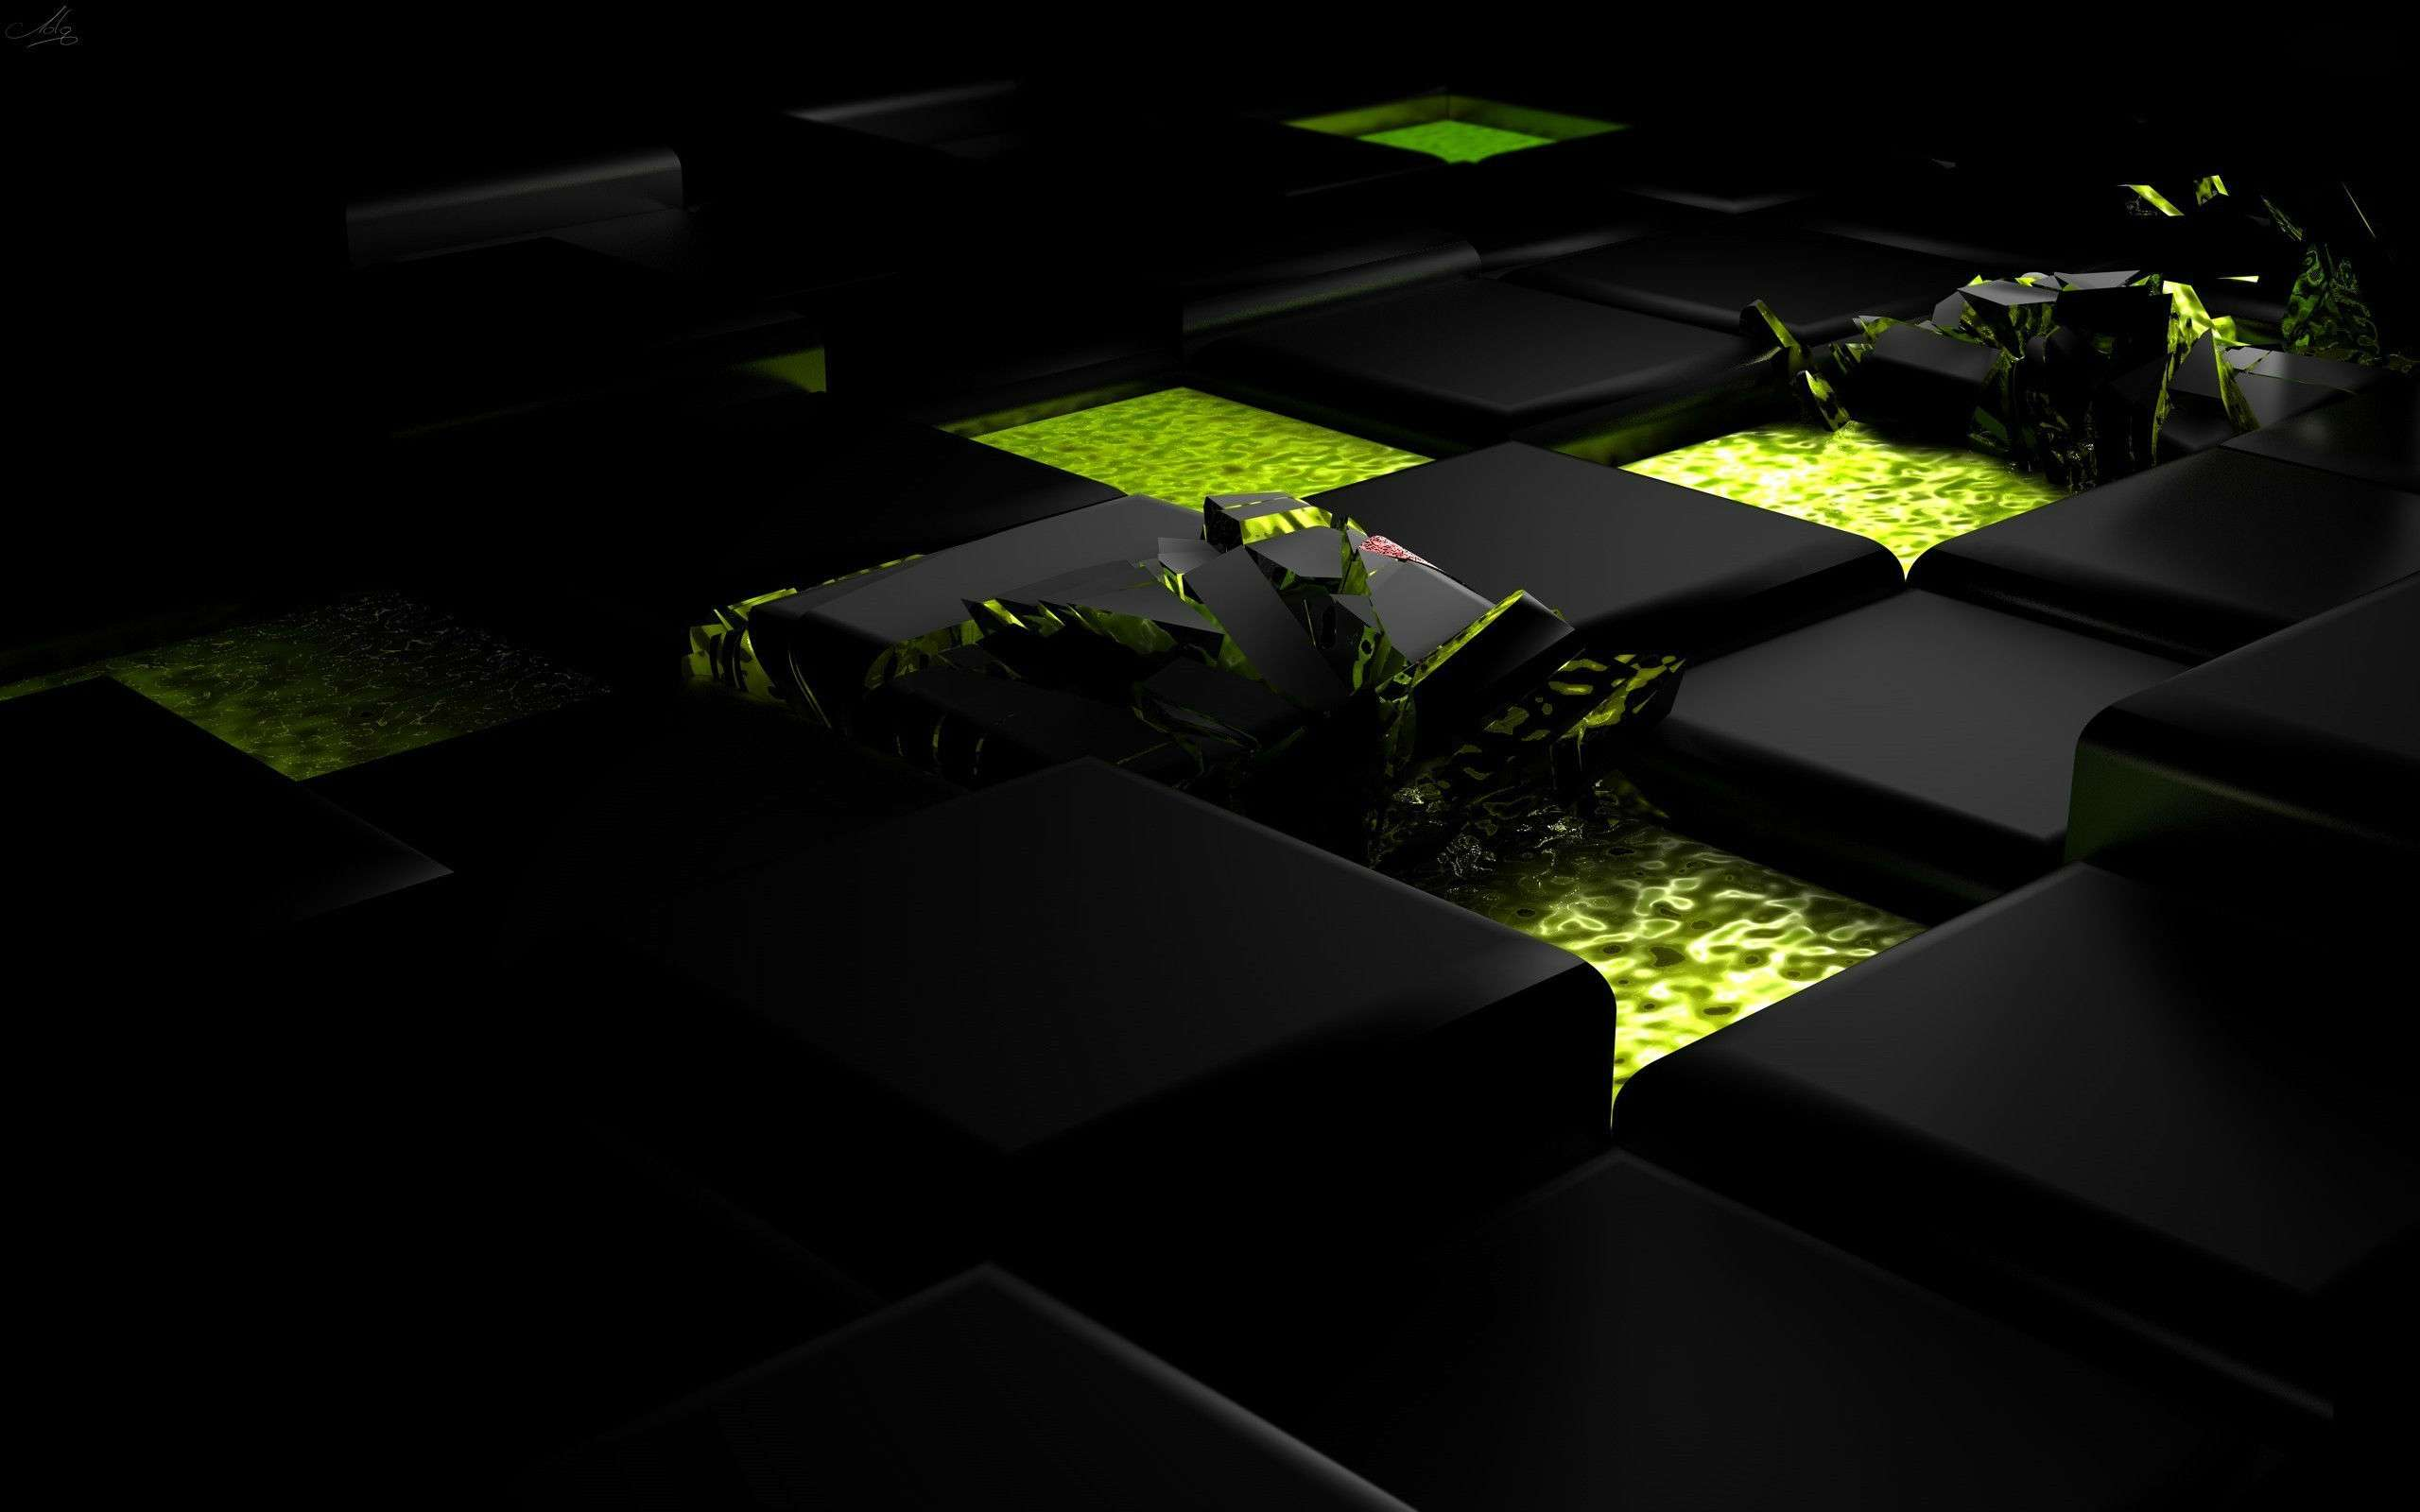 3D Abstract CGI Wallpaper 011